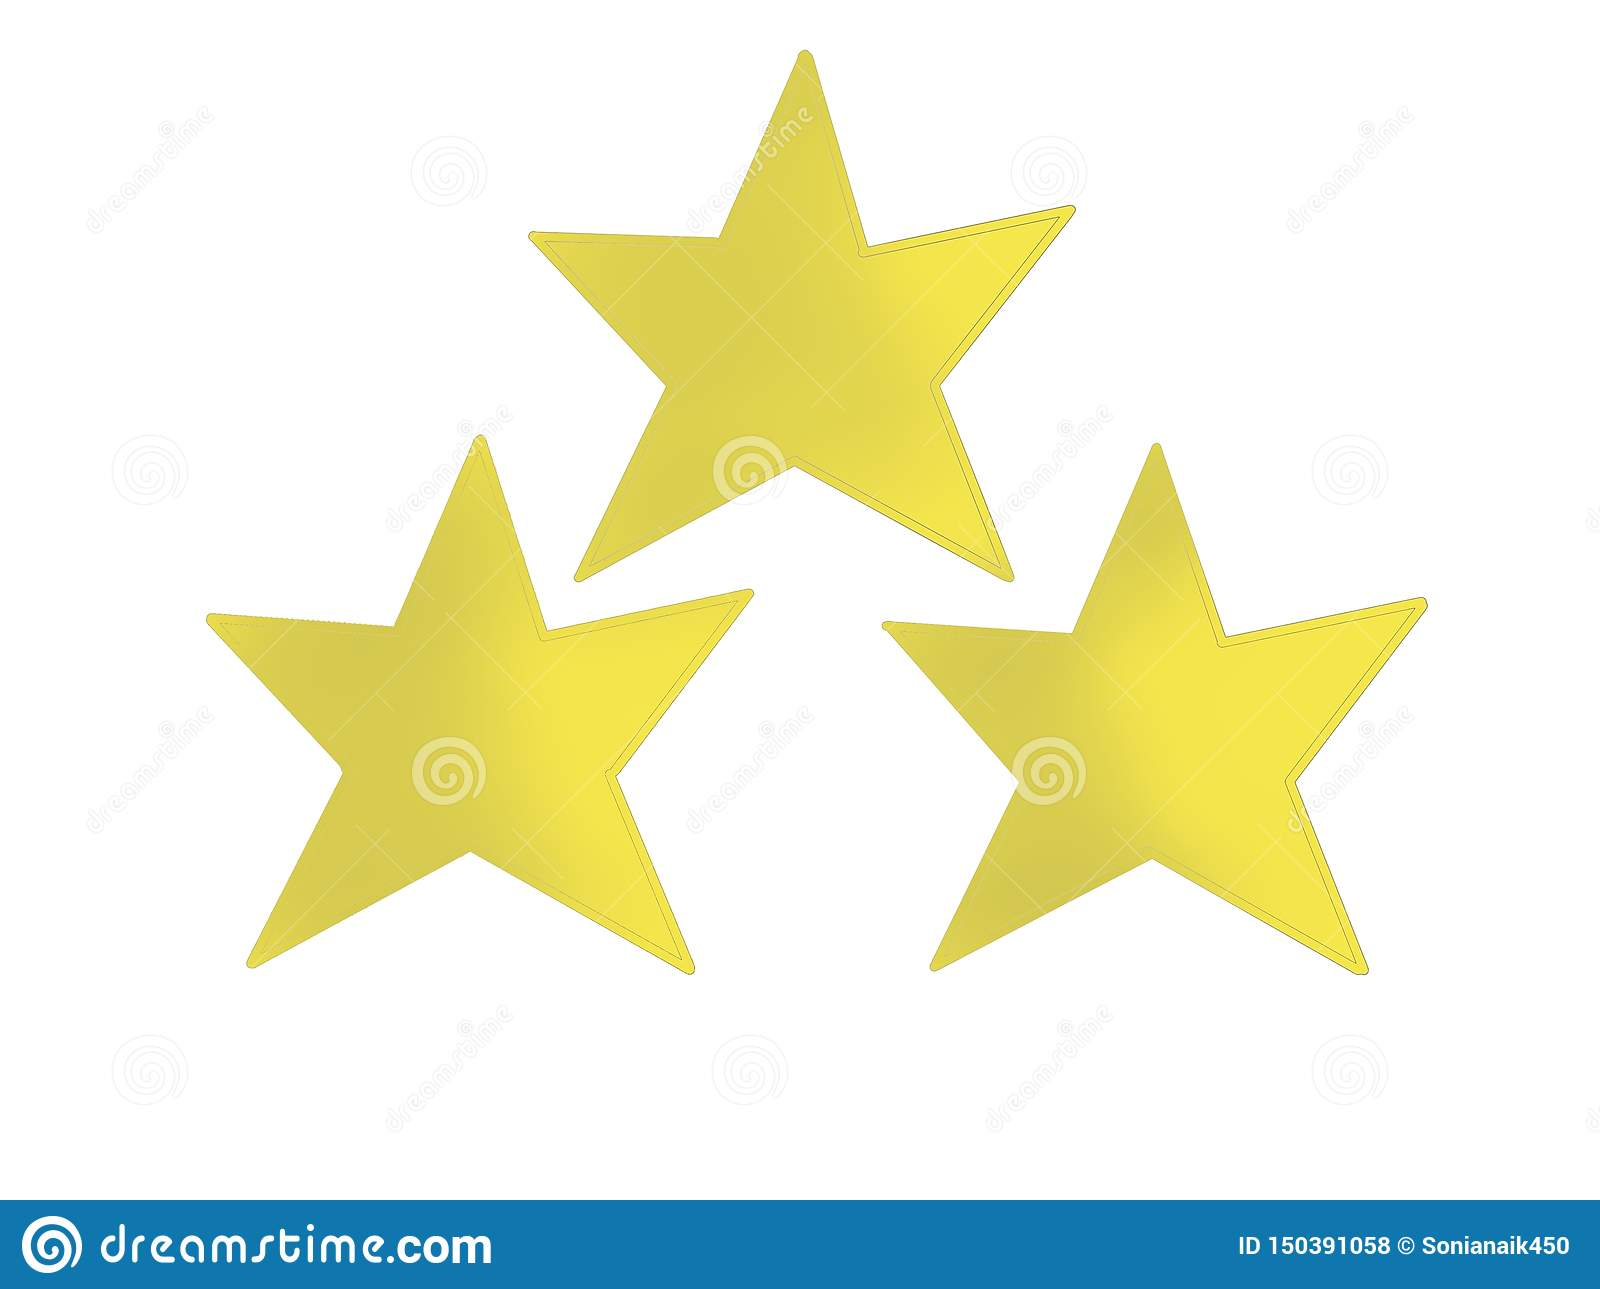 Three golden star in a pyramid shape